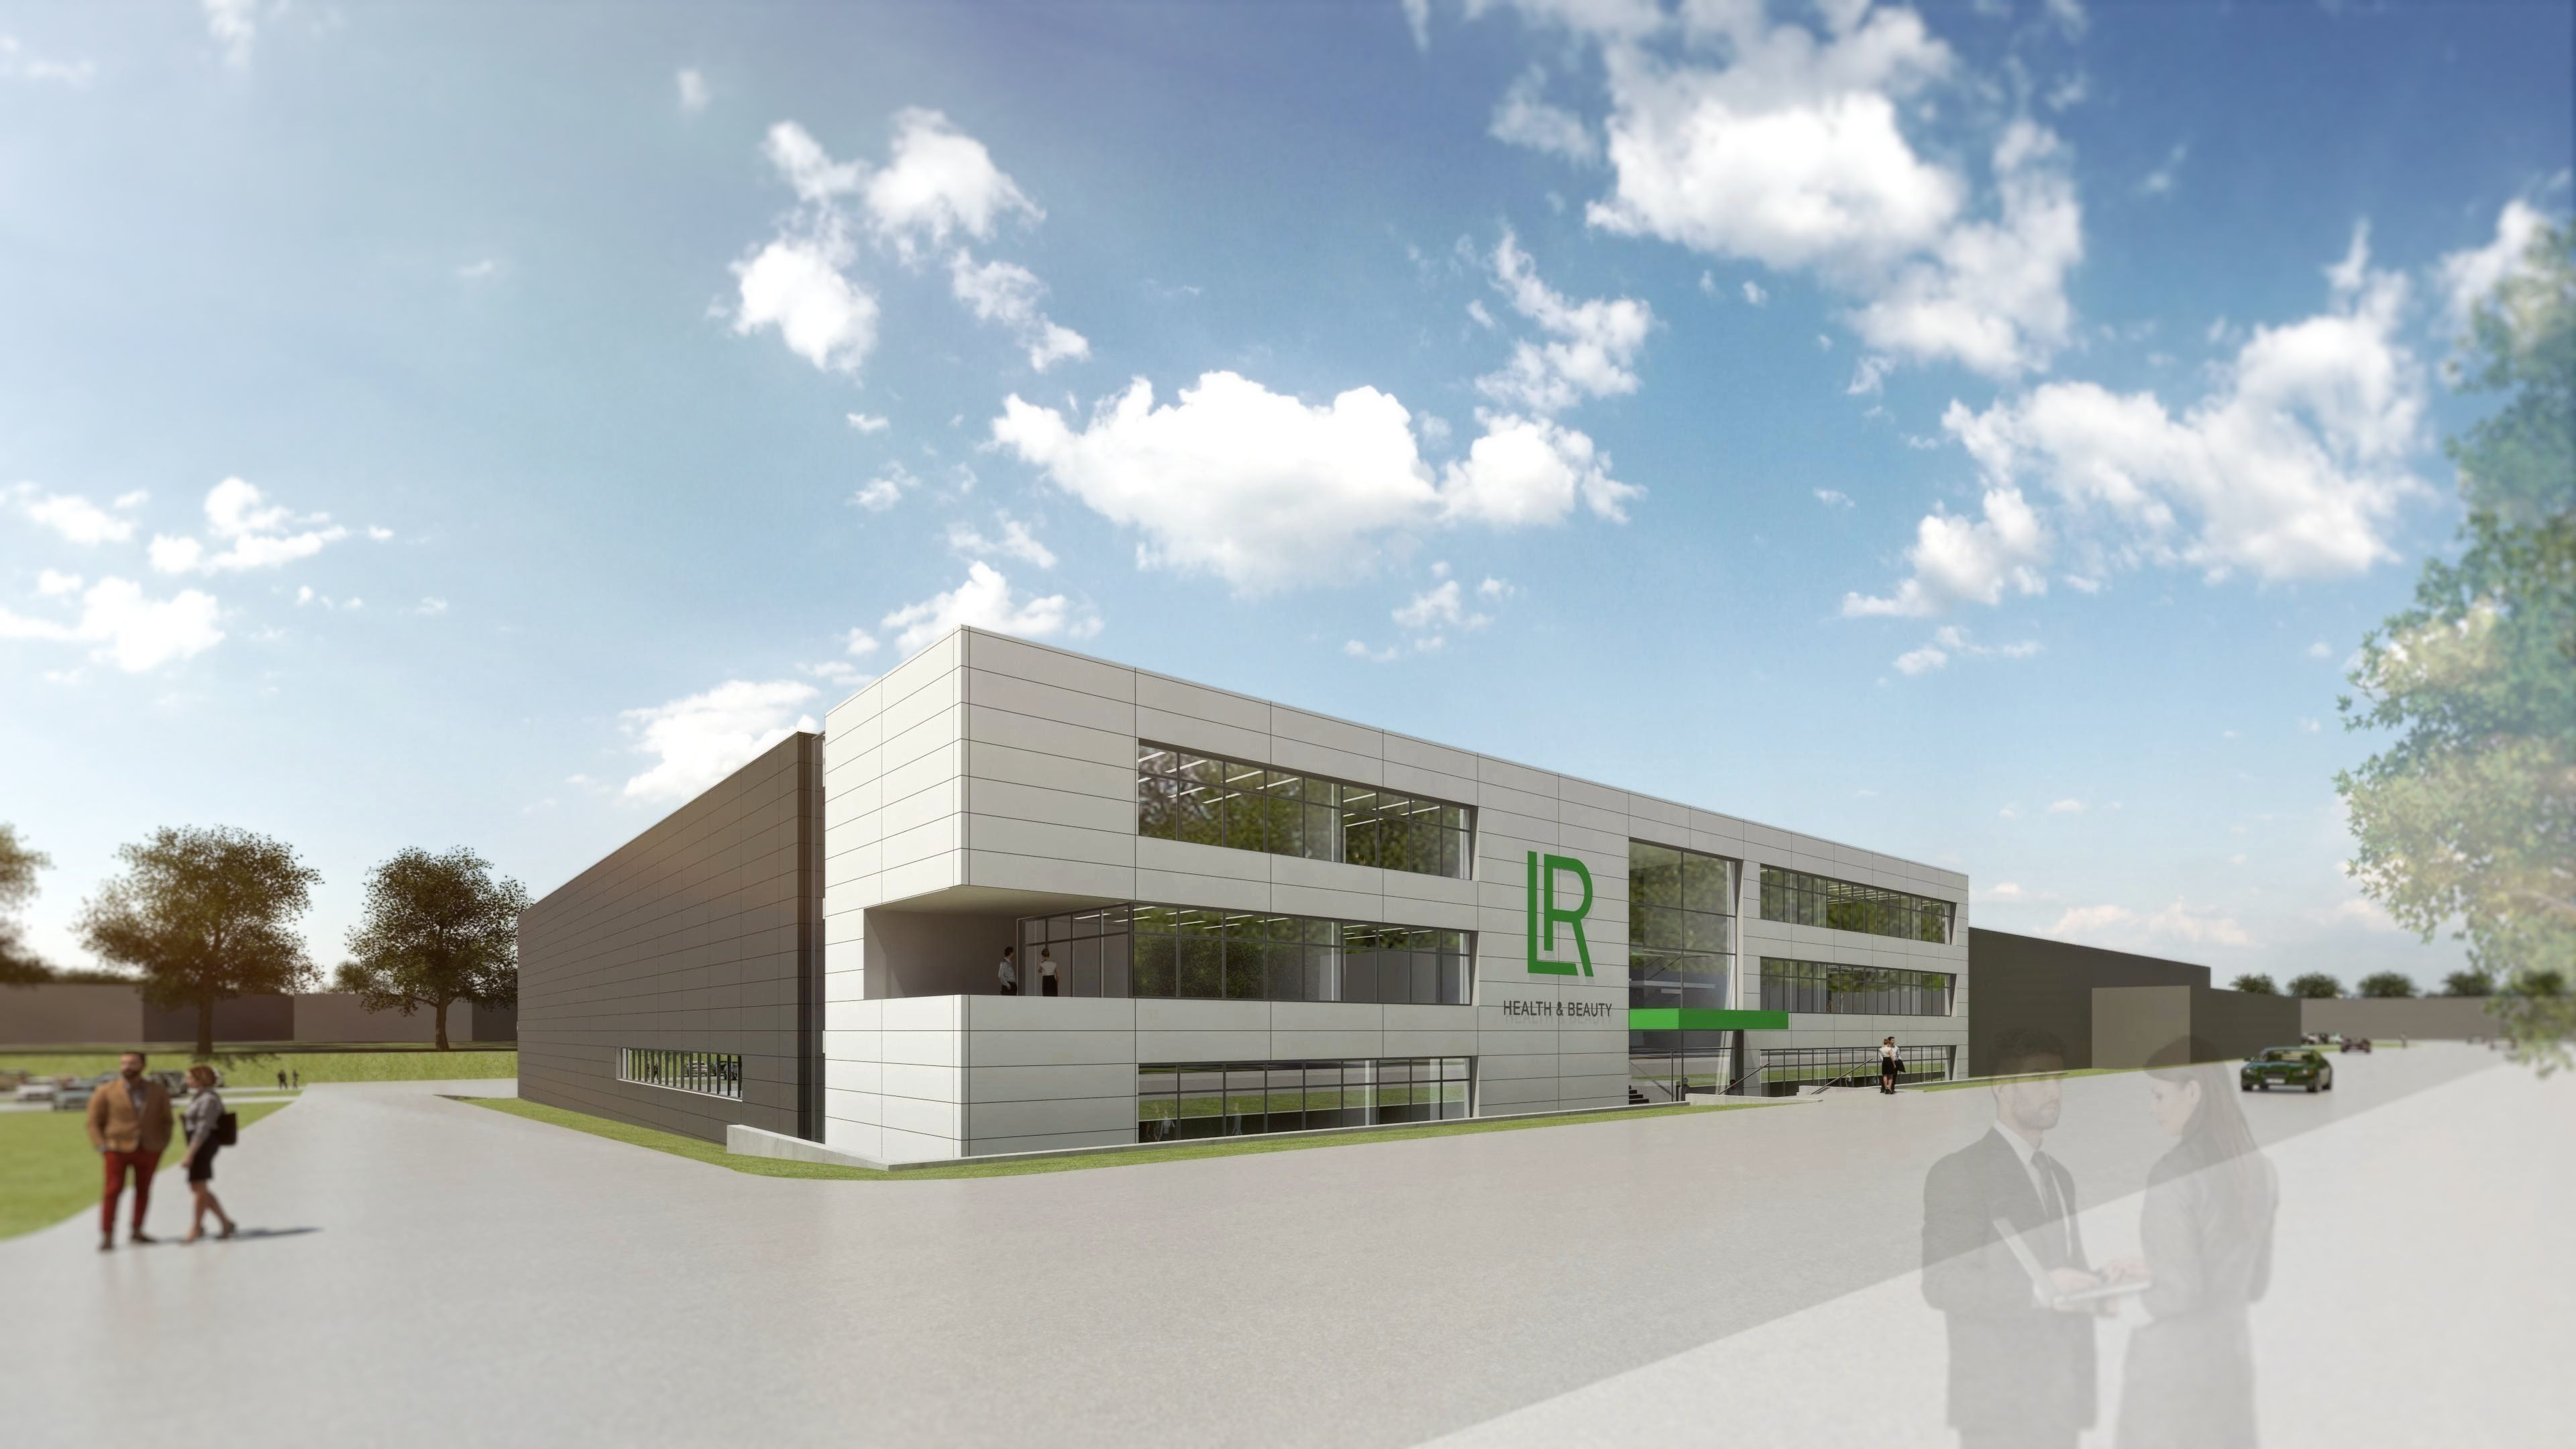 Model view of the new production site for Aloe Vera Drinking Gels (Copyright: Assmann Gruppe / LR).